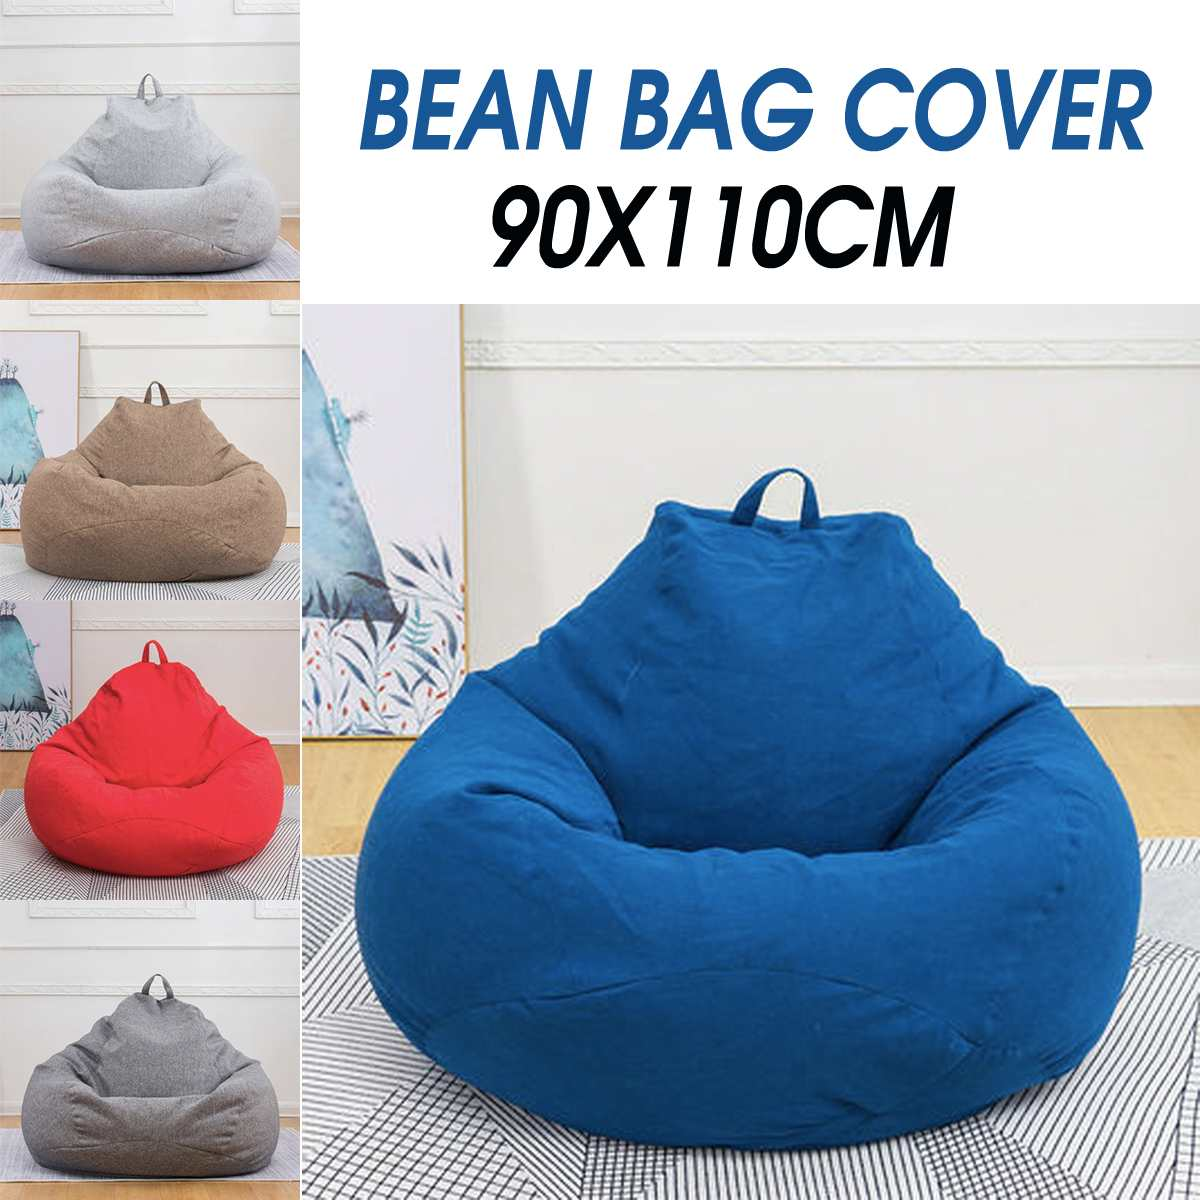 Lazy-Bean-Bag-Cover Seat Ottoman-Seats Couch Lounge Sofas-Game Sitting Adults 90x110cm